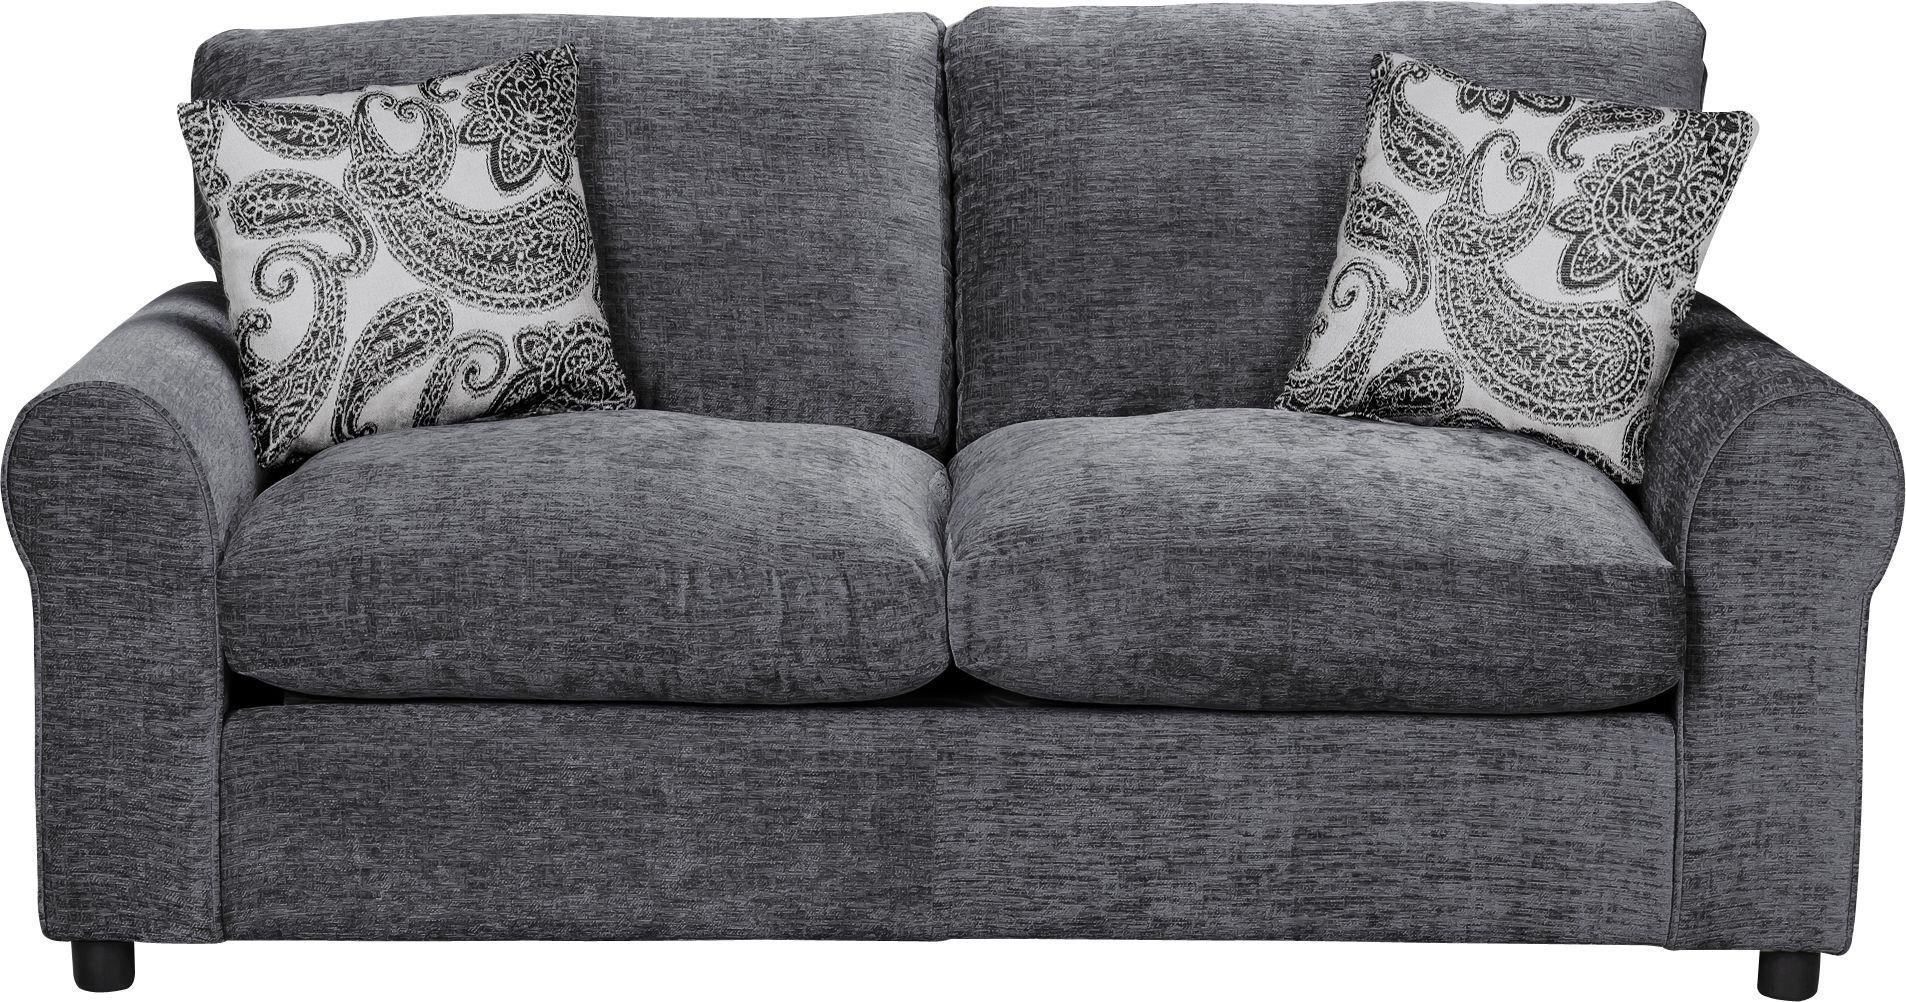 sofa beds argos co uk laura ashley gloucester 2 seater buy home tabitha fabric bed - charcoal at ...